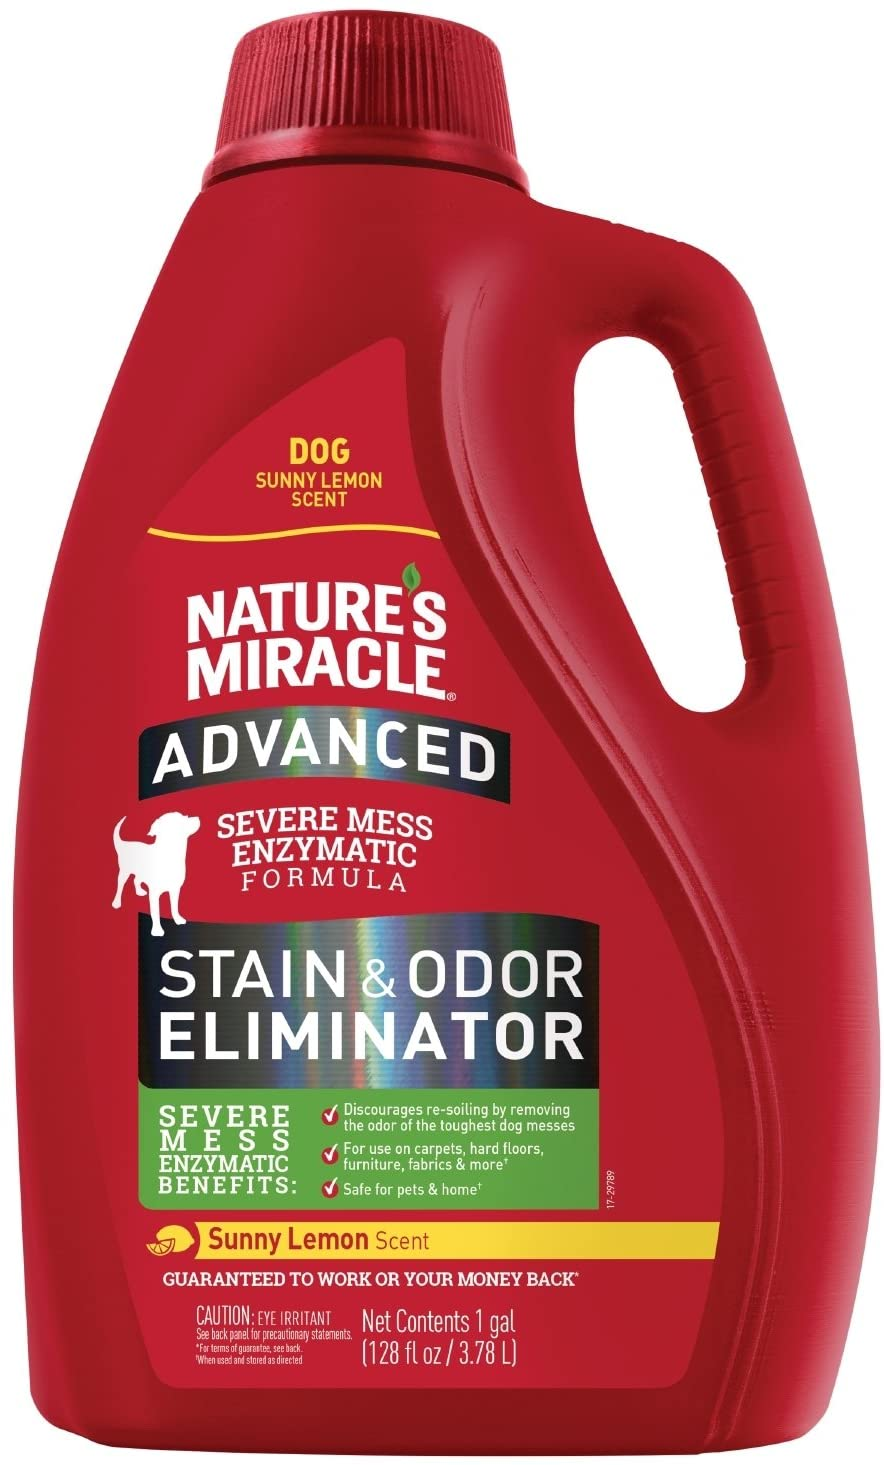 Nature's Miracle Sunny Lemon Advance Stain and Odor Eliminator 32 oz